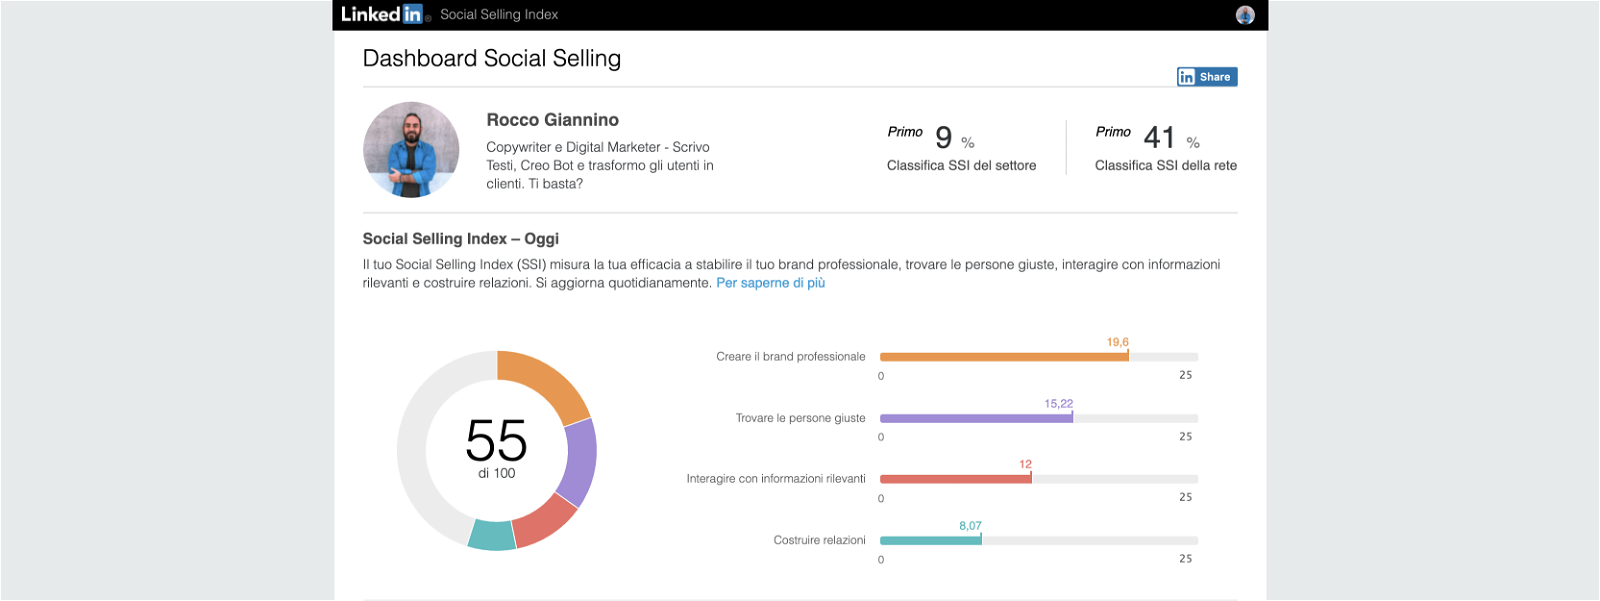 social-selling-index-indici